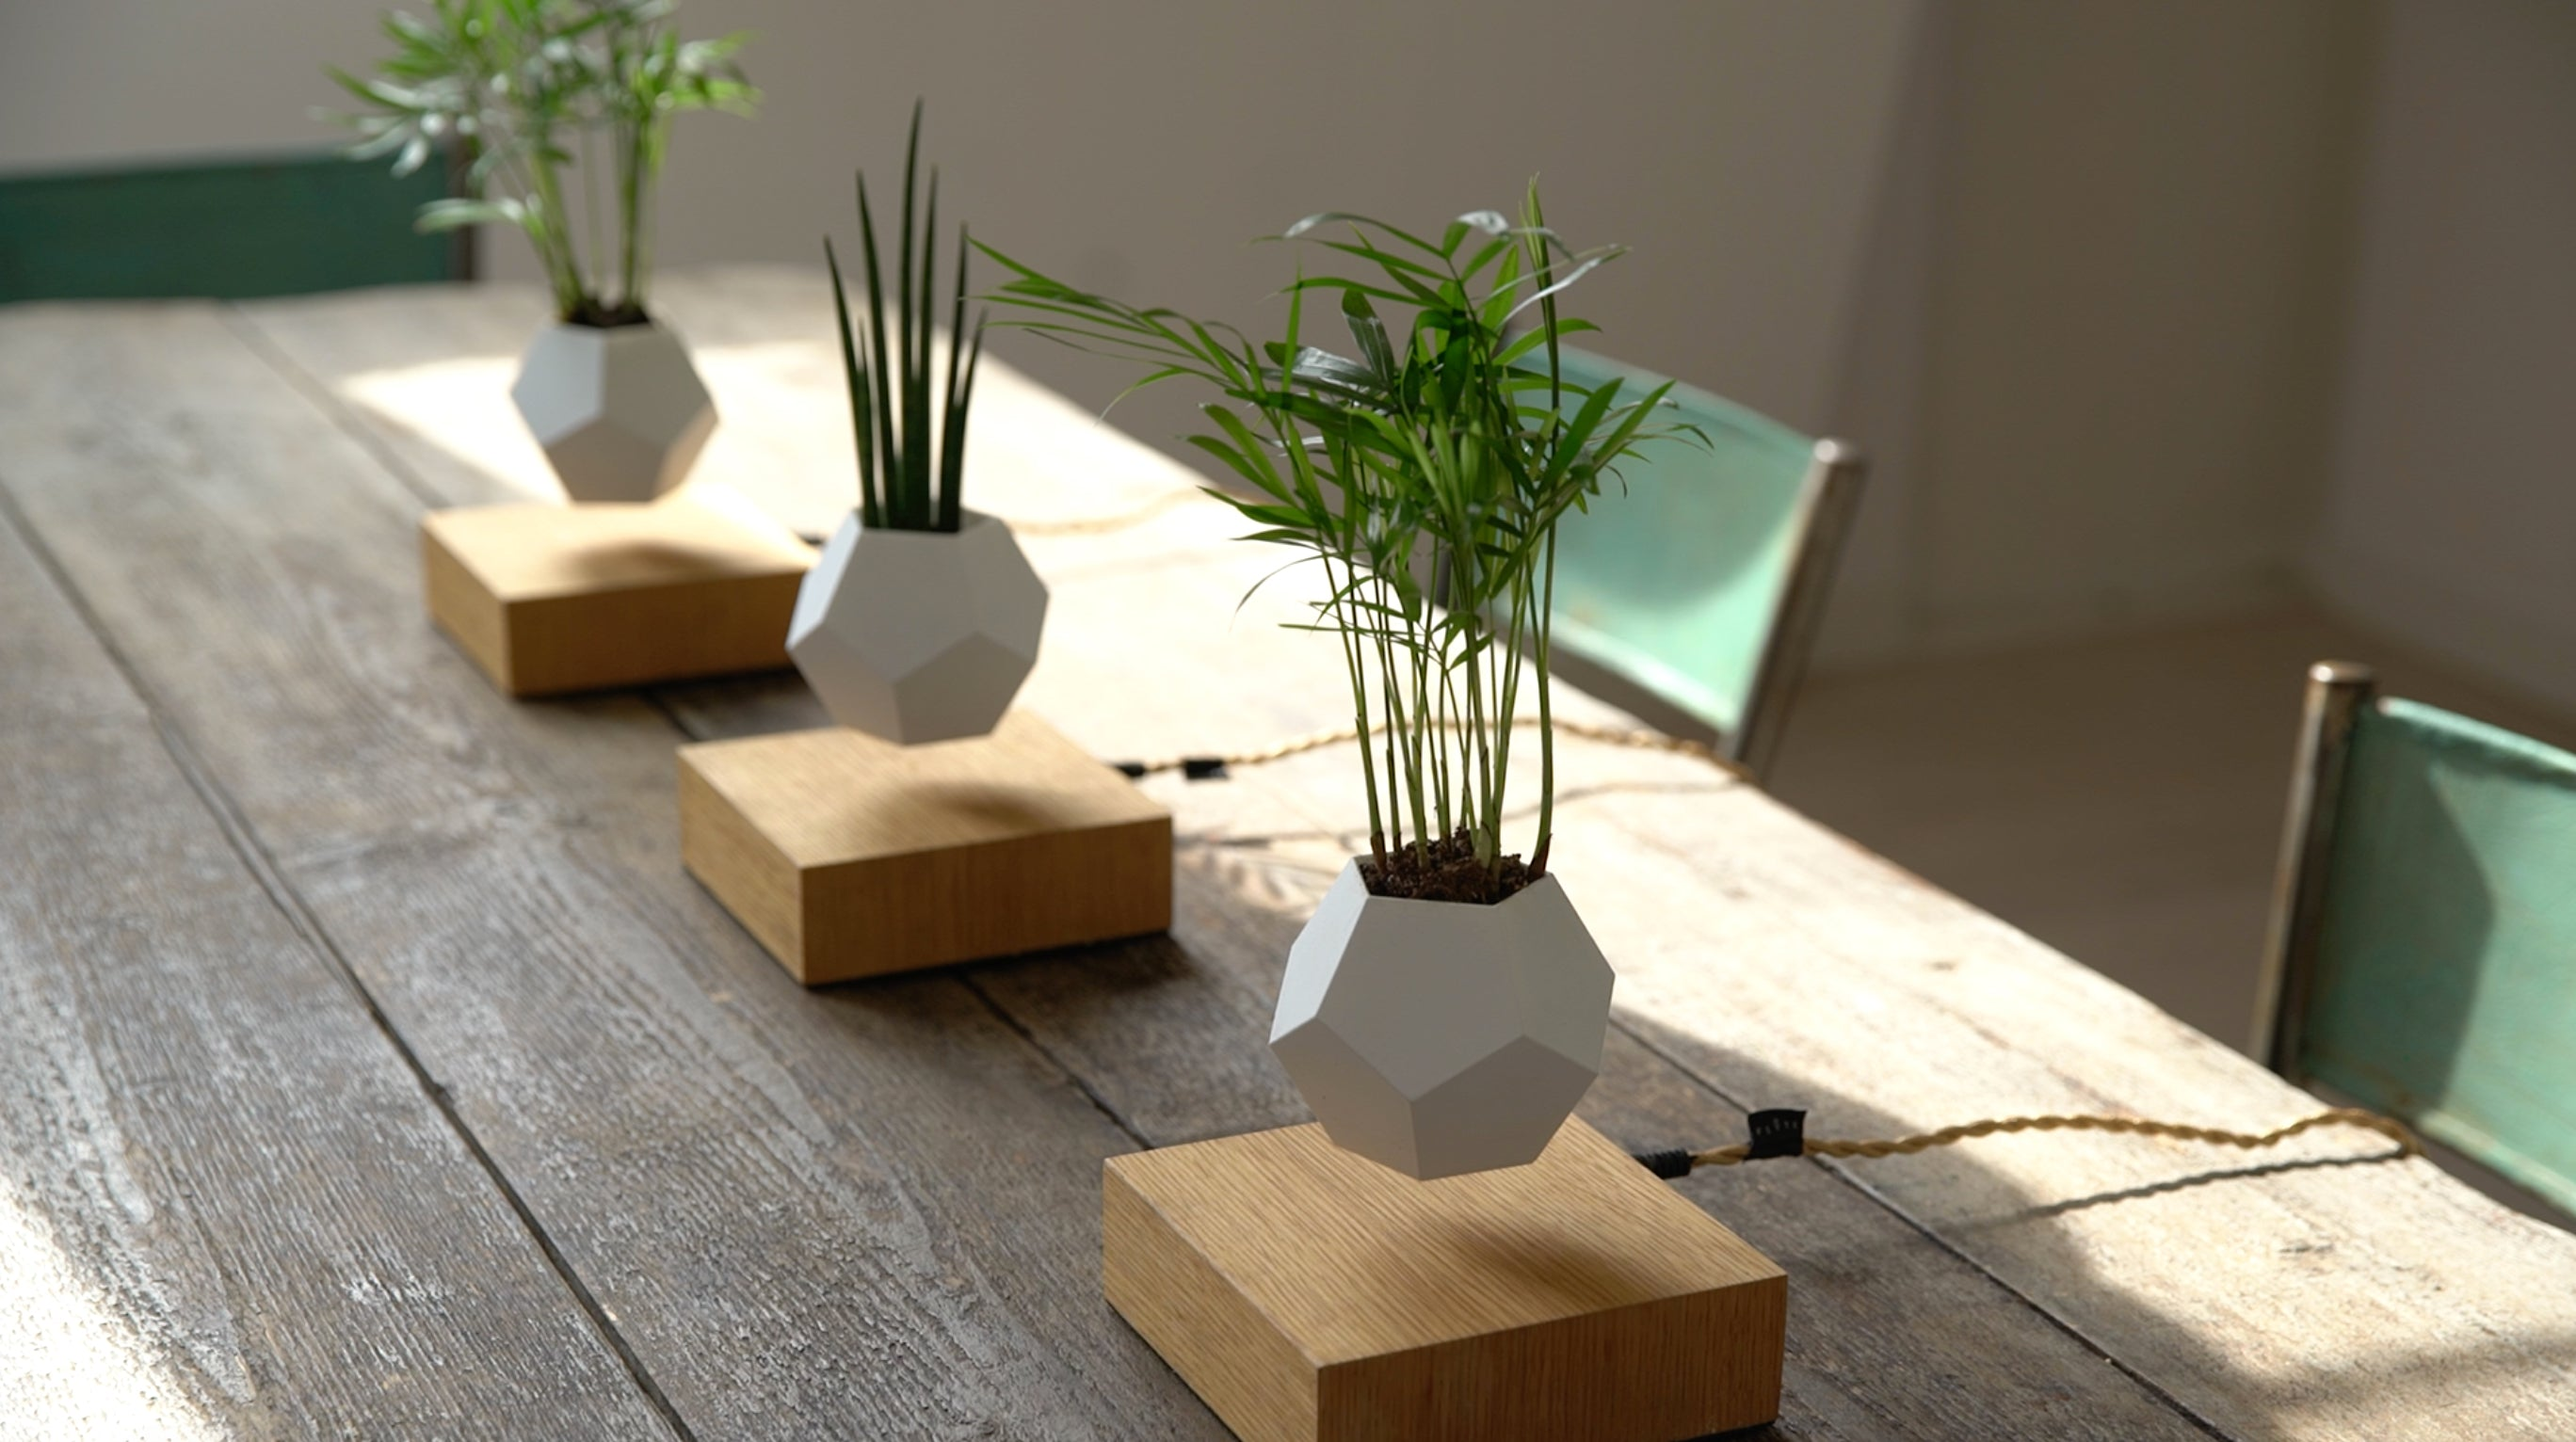 Lifestyle photo with 3 LYFE levitating planters in a row on dining table